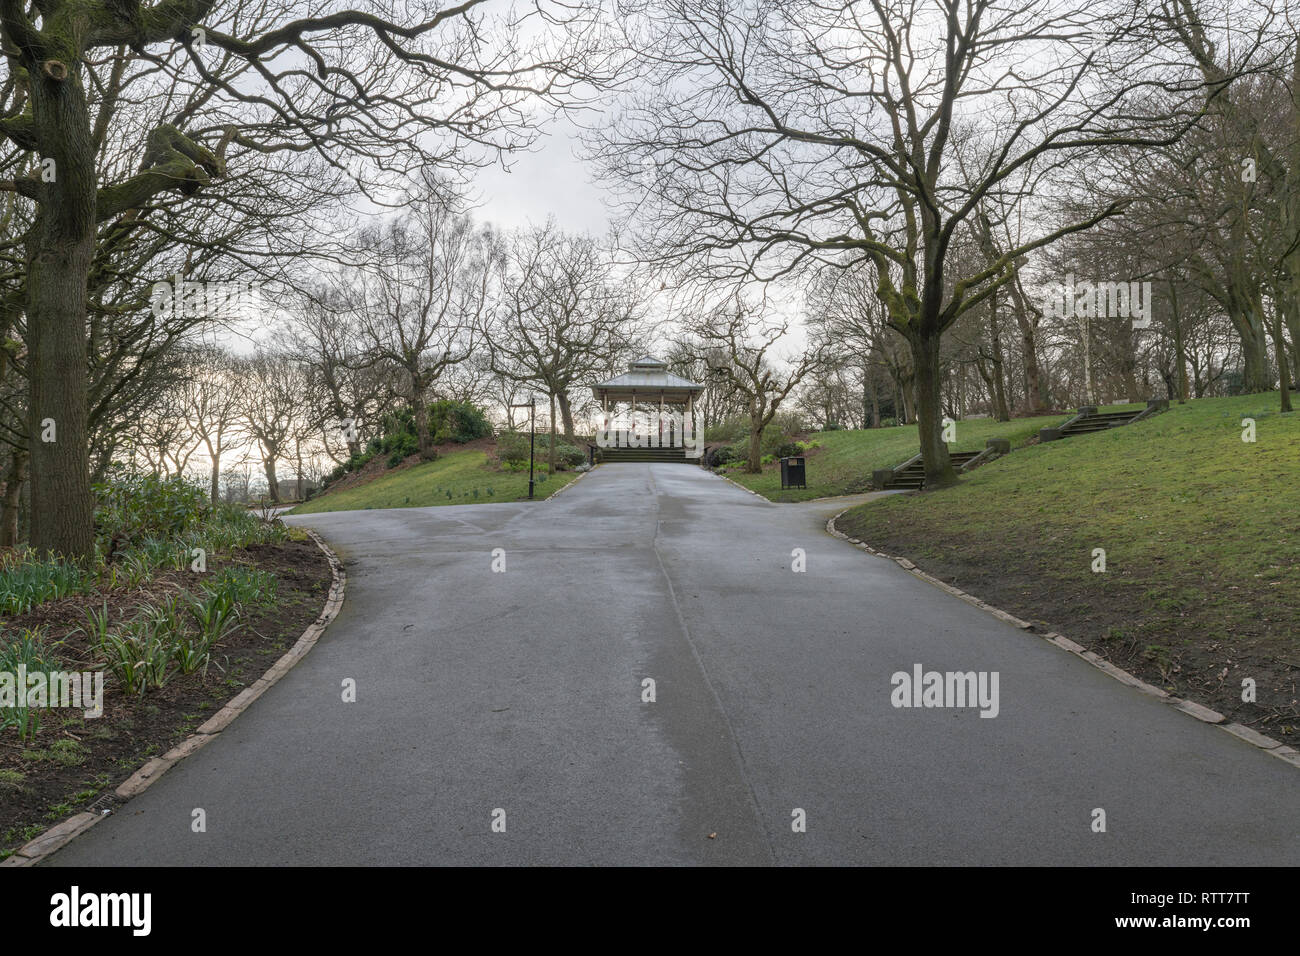 The Bandstand, Beaumont Park, Huddersfield - Stock Image